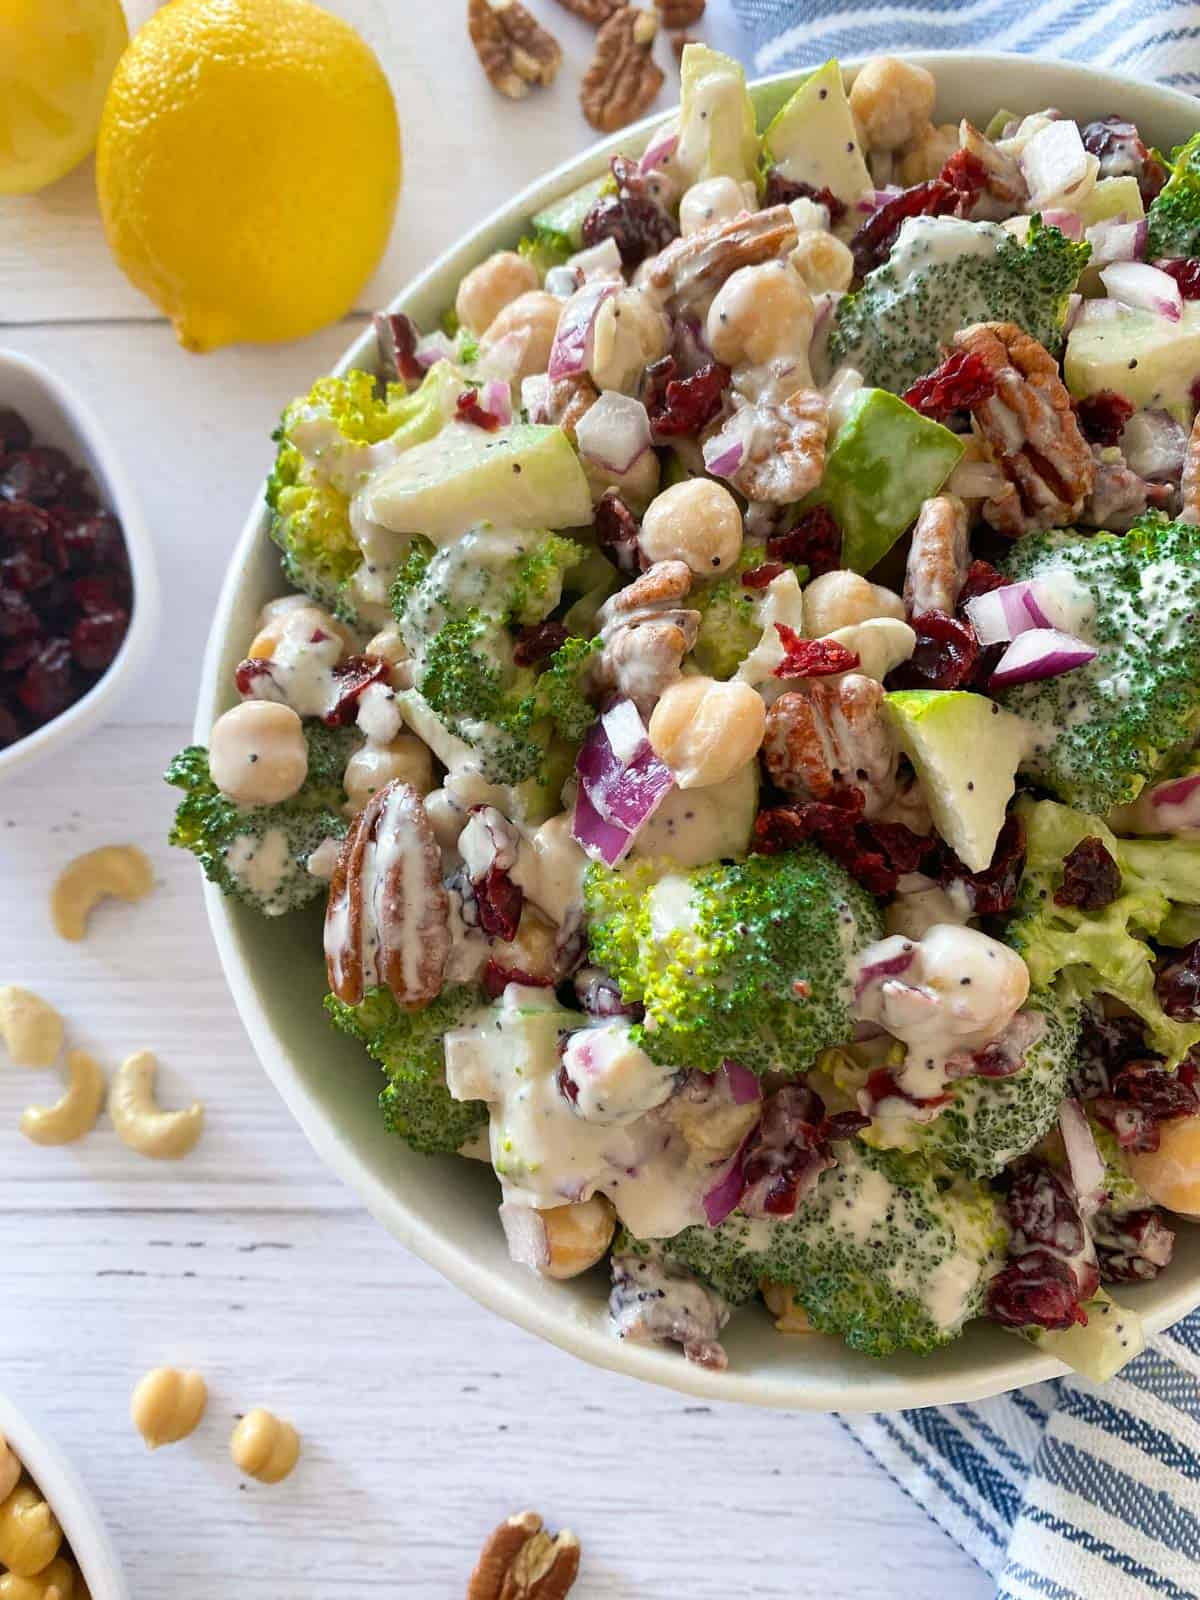 Bowl of broccoli salad with cranberries, pecans, chickpeas, apple and a creamy dressing.